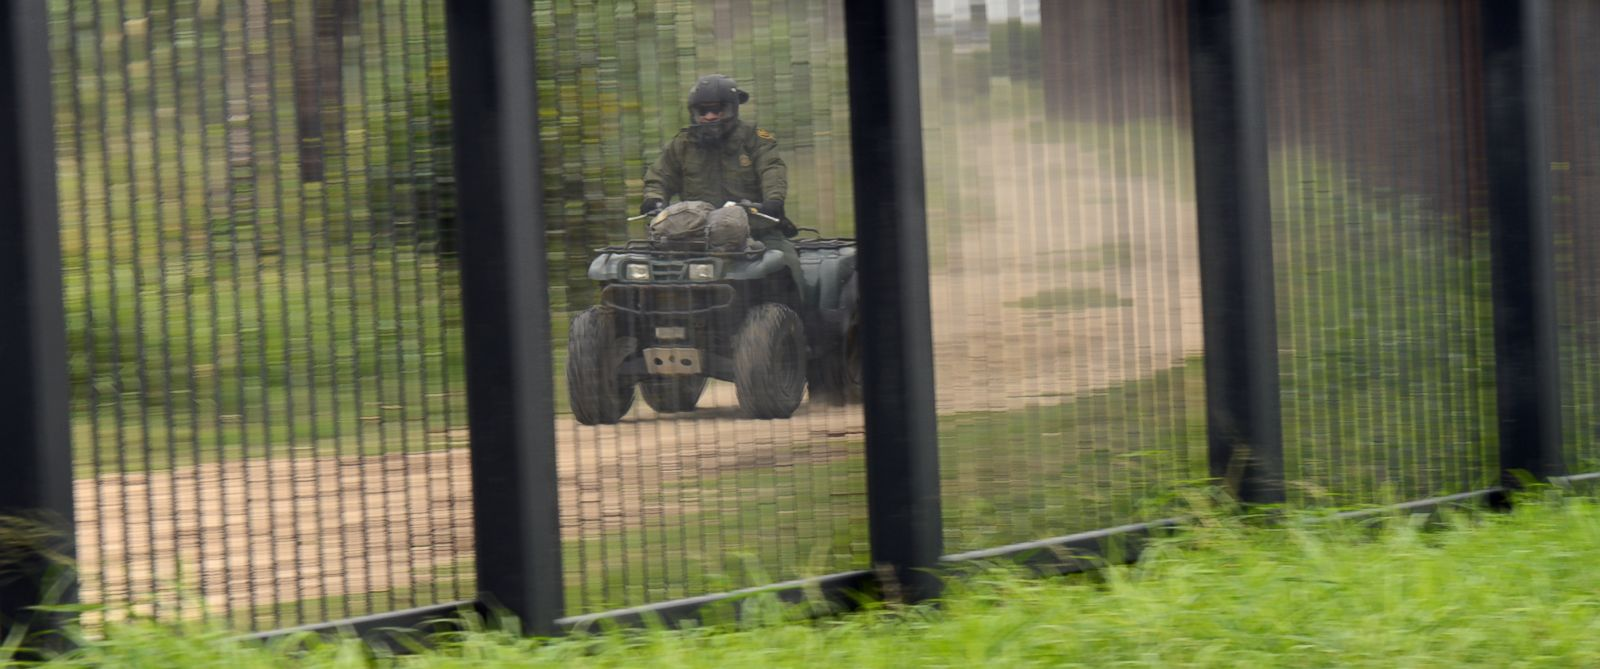 PHOTO: A U.S. Border Patrol agent rides along the Border Fence on an ATV, Nov. 18,2014, near Hope Park in downtown Brownsville, Texas.